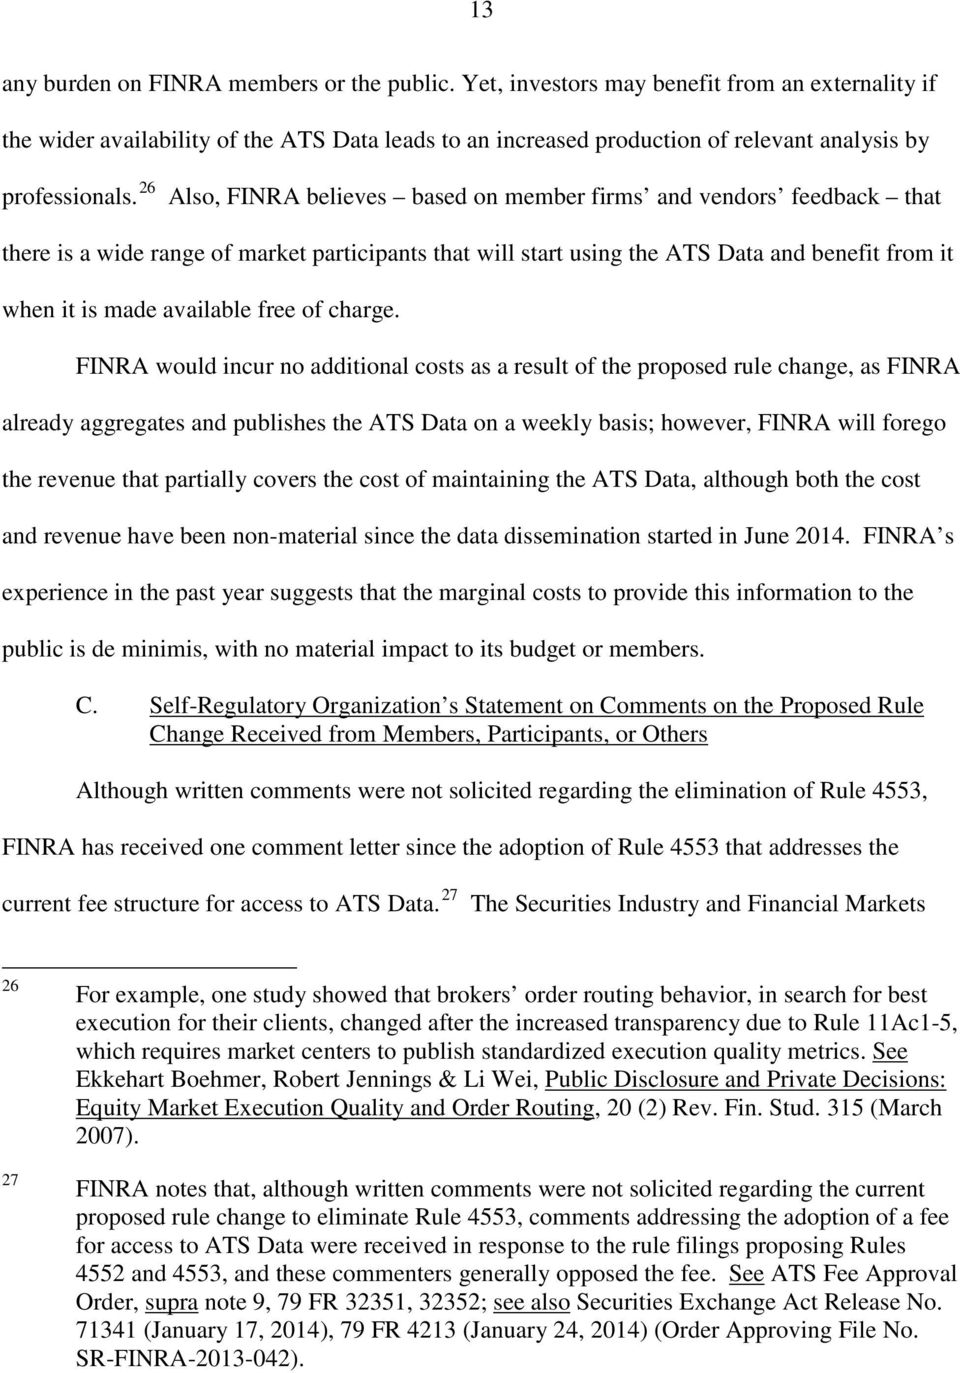 26 Also, FINRA believes based on member firms and vendors feedback that there is a wide range of market participants that will start using the ATS Data and benefit from it when it is made available